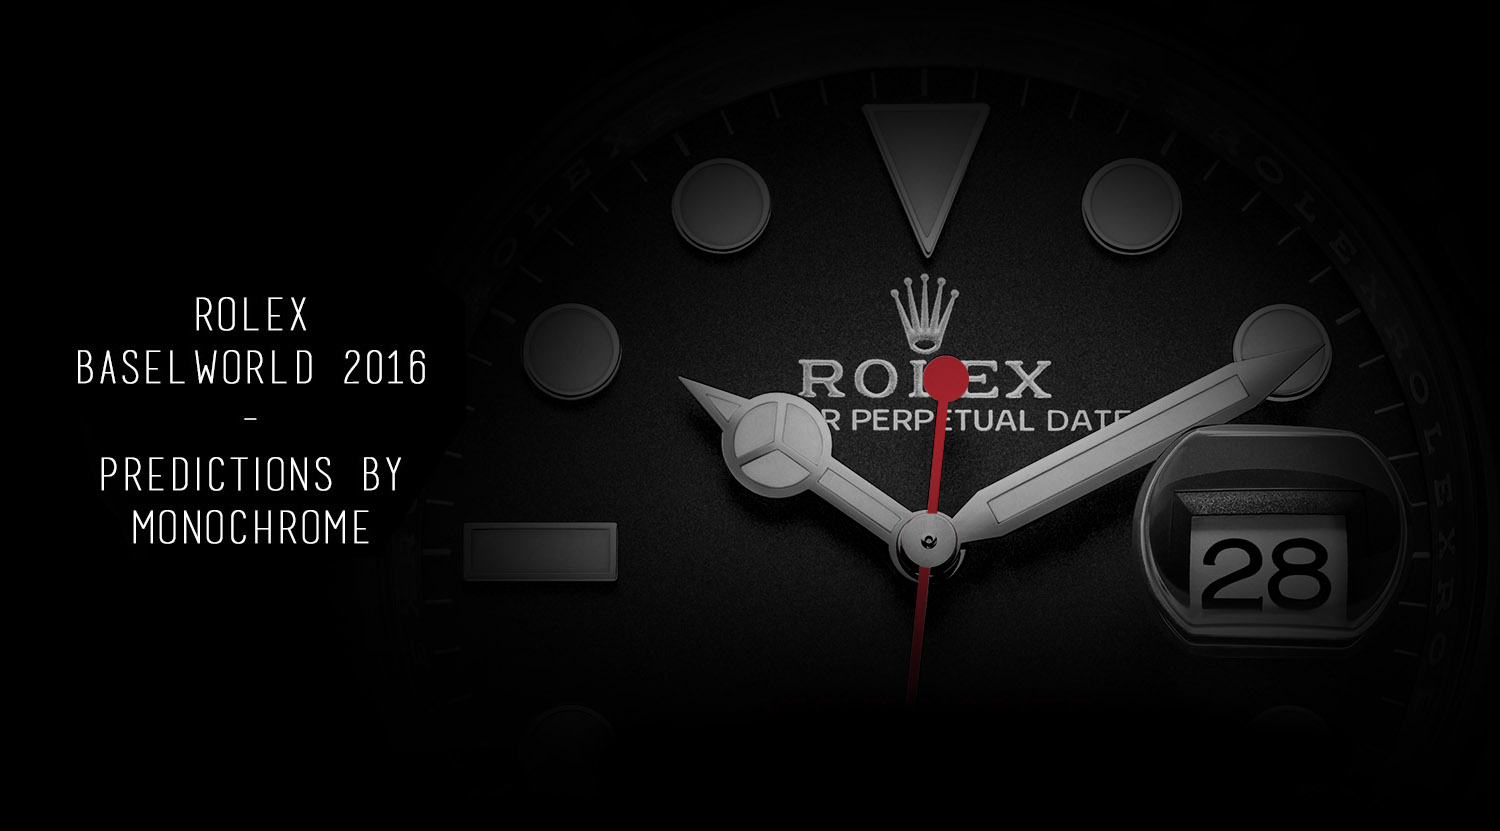 Rolex Baselworld 2016 - Rolex Predictions 2016 - Rolex novelties 2016 - Rolex new watches 2016